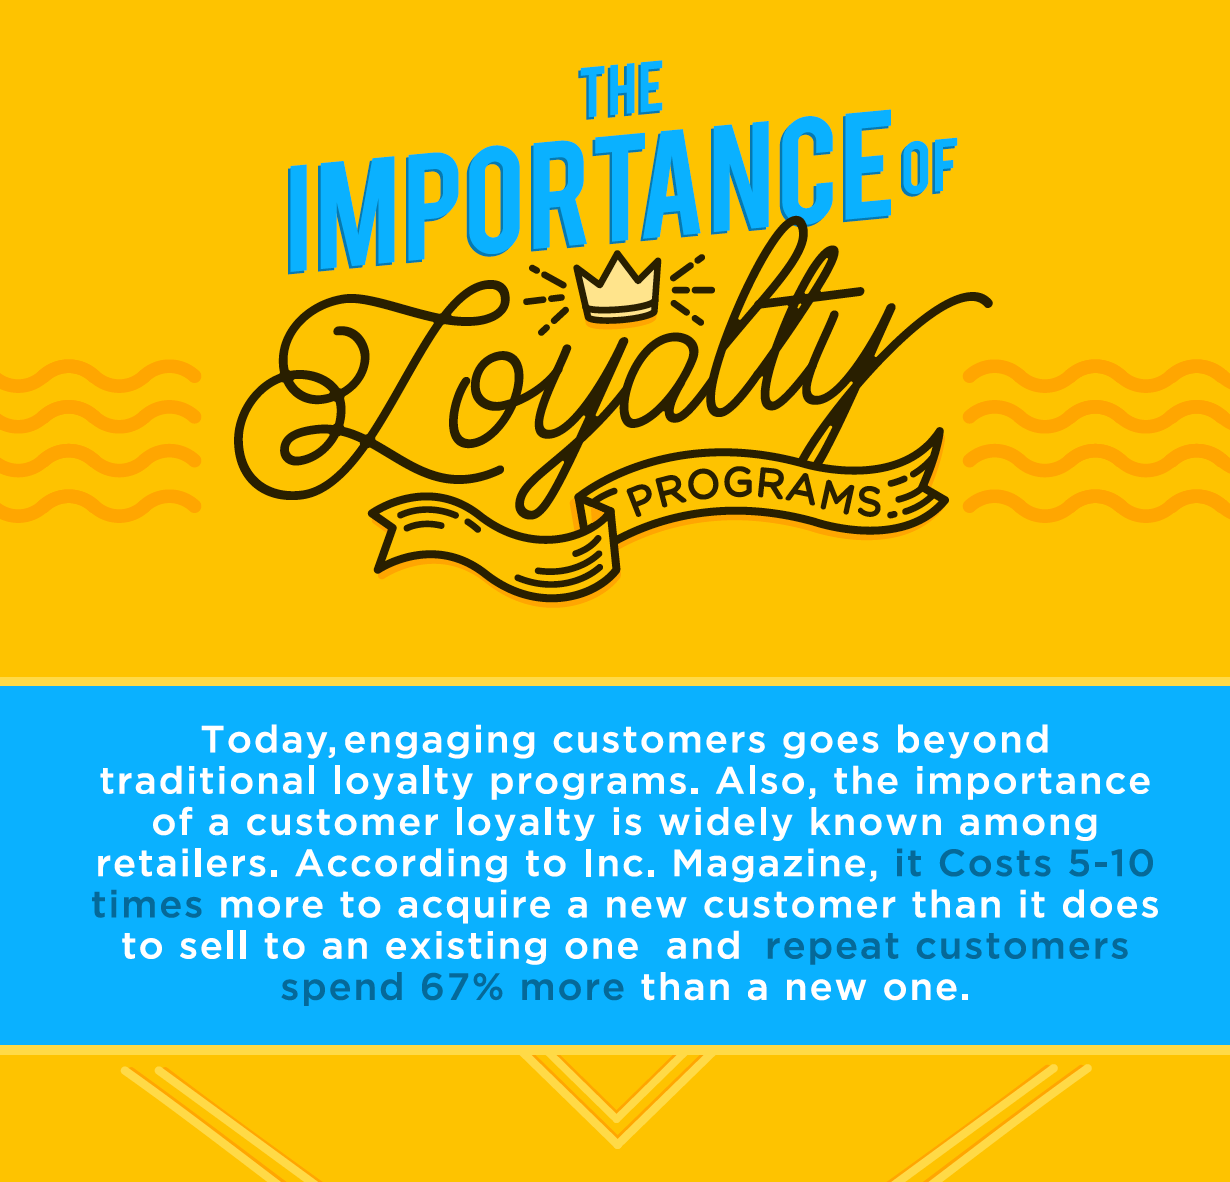 Infographic_The importance of loyalty programs_EN.png